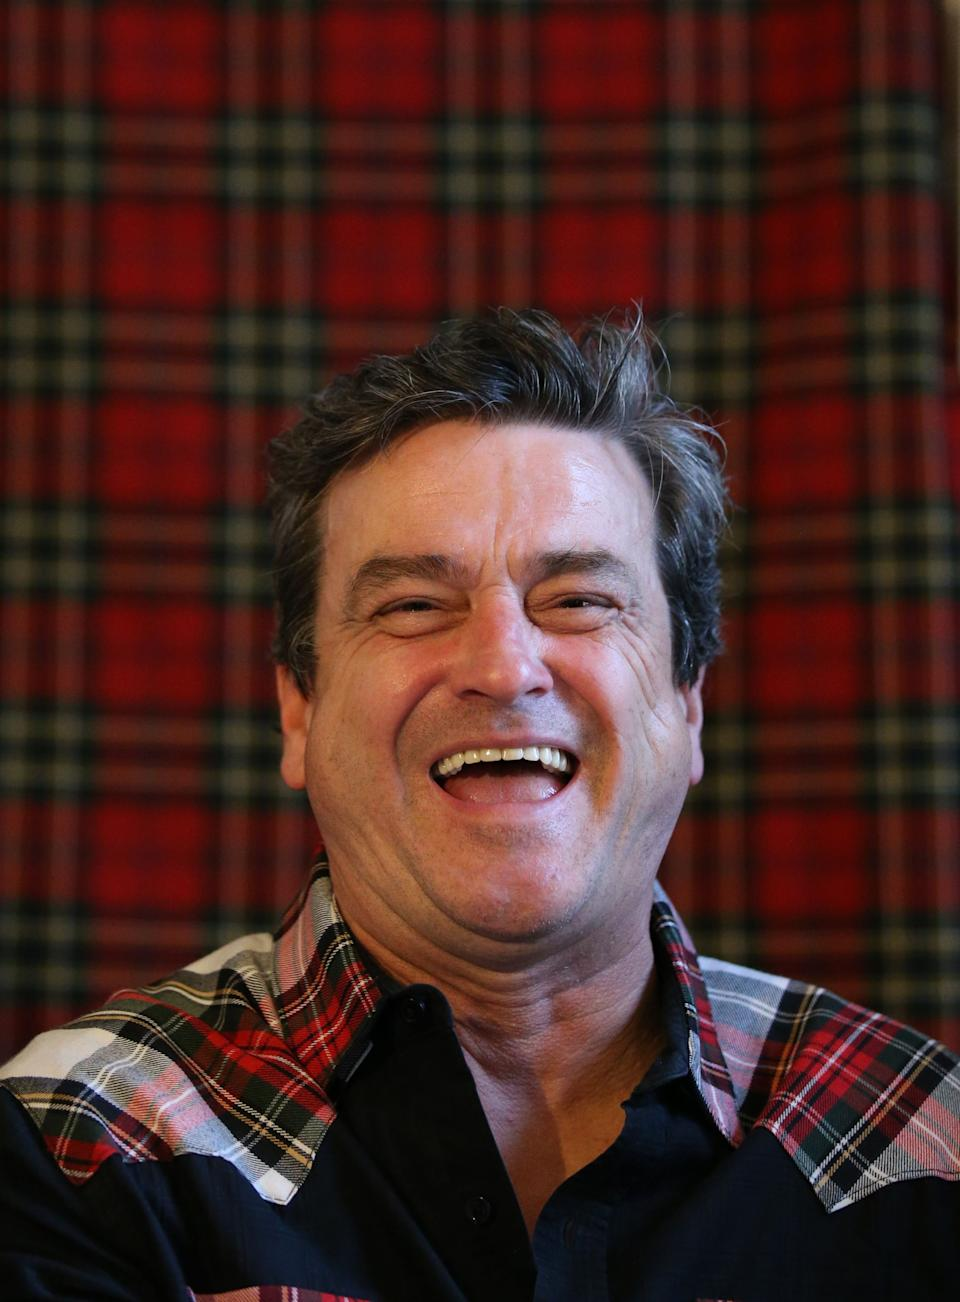 File photo dated 22/09/15 of Bay City Roller Les McKeown during the announcement of the band's reunion at Central Hotel in Glasgow. Bay City Rollers singer Les McKeown has died at the age of 65. Issue date: Thursday April 22, 2021.